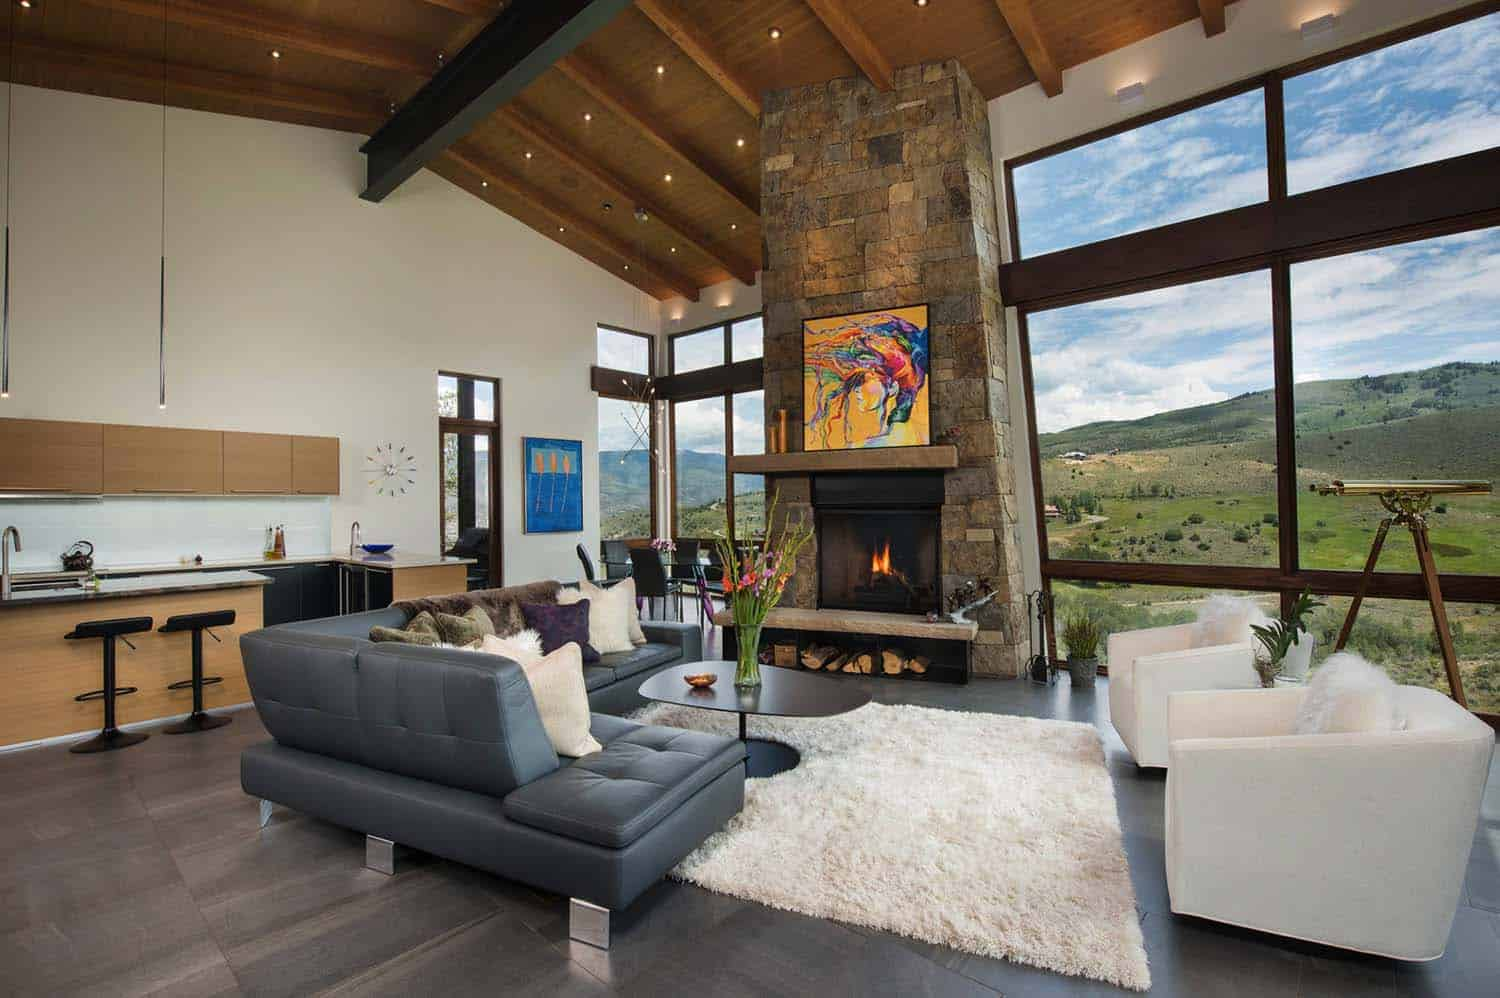 Contemporary Mountain Home Renovation-Berglund Architects-06-1 Kindesign